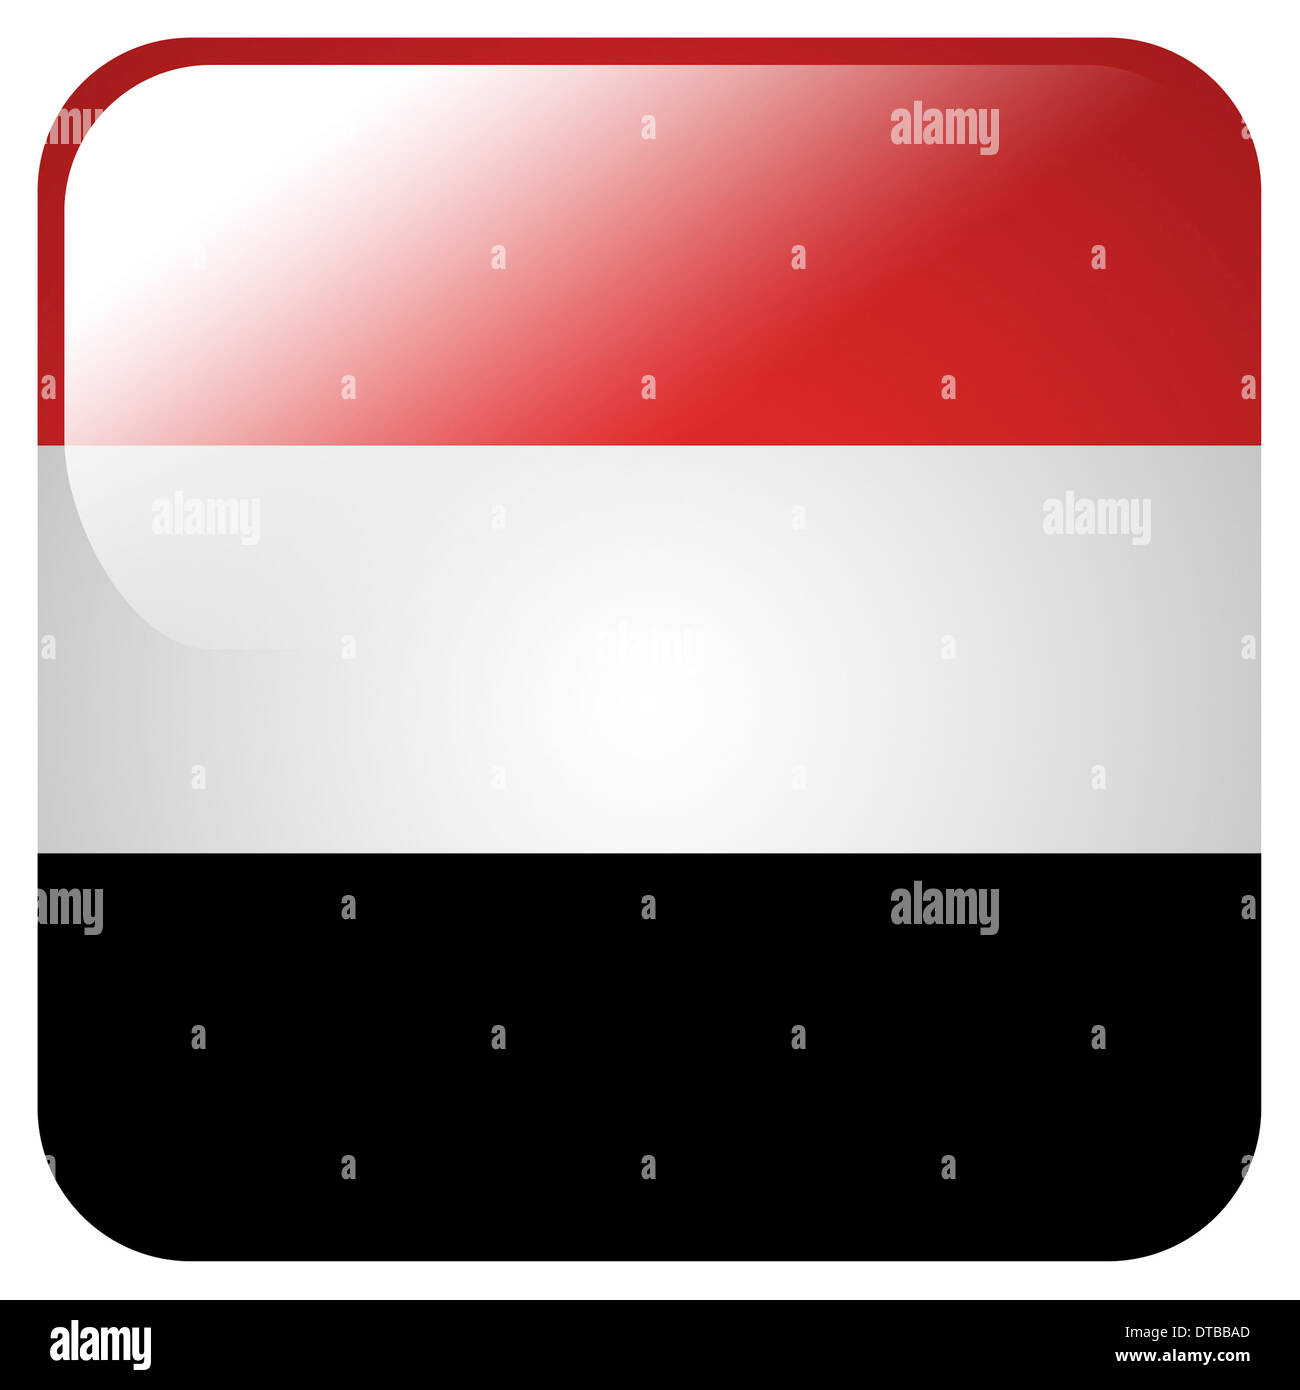 Glossy icon with flag of Yemen - Stock Image